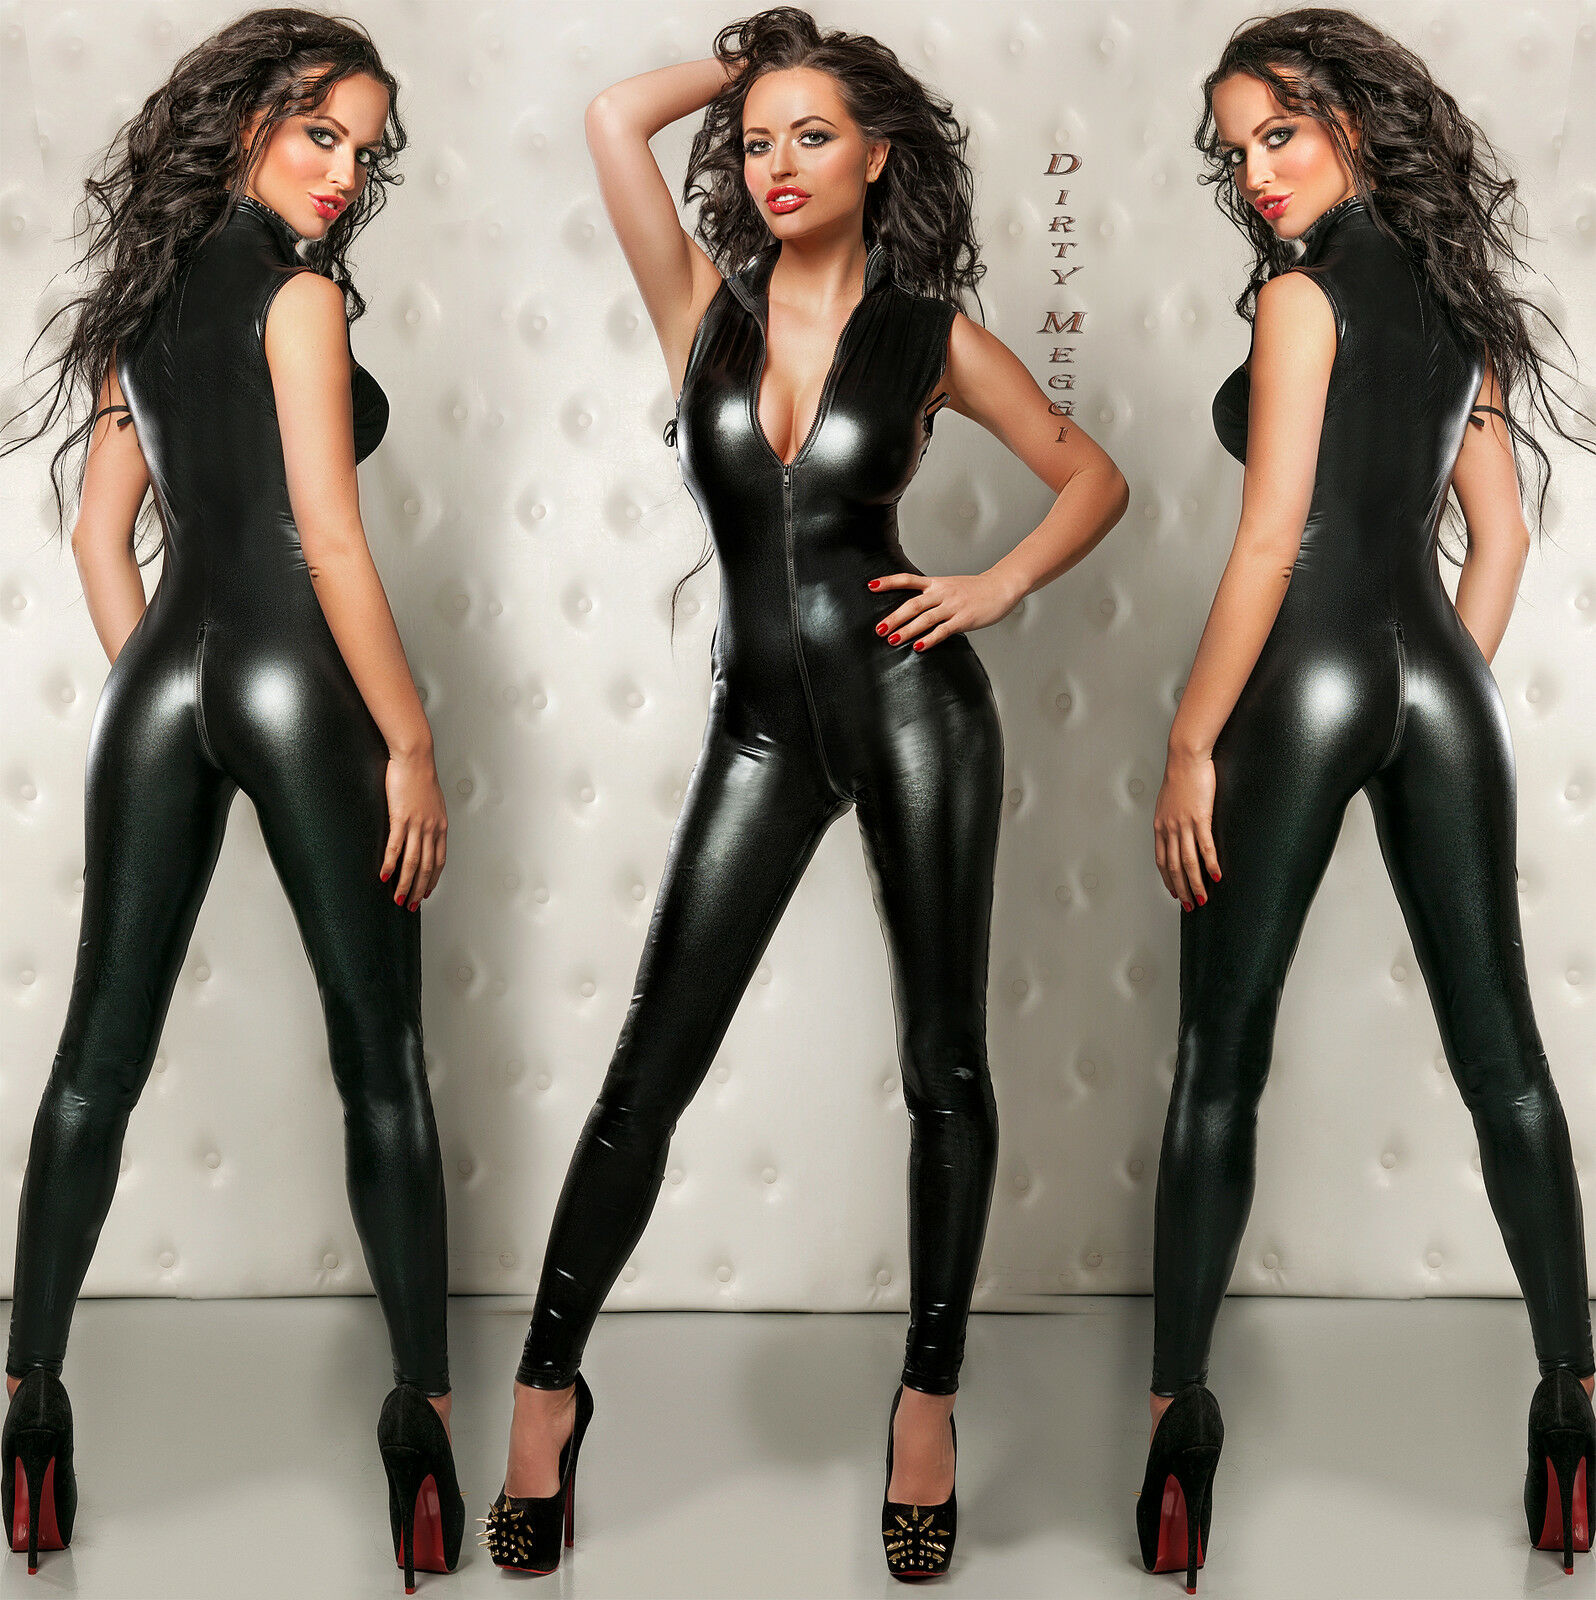 CATSUIT Clubwear Party GOGO OVERALL DESSOUS SCHWARZ Gr S M 36 38 WETLOOK